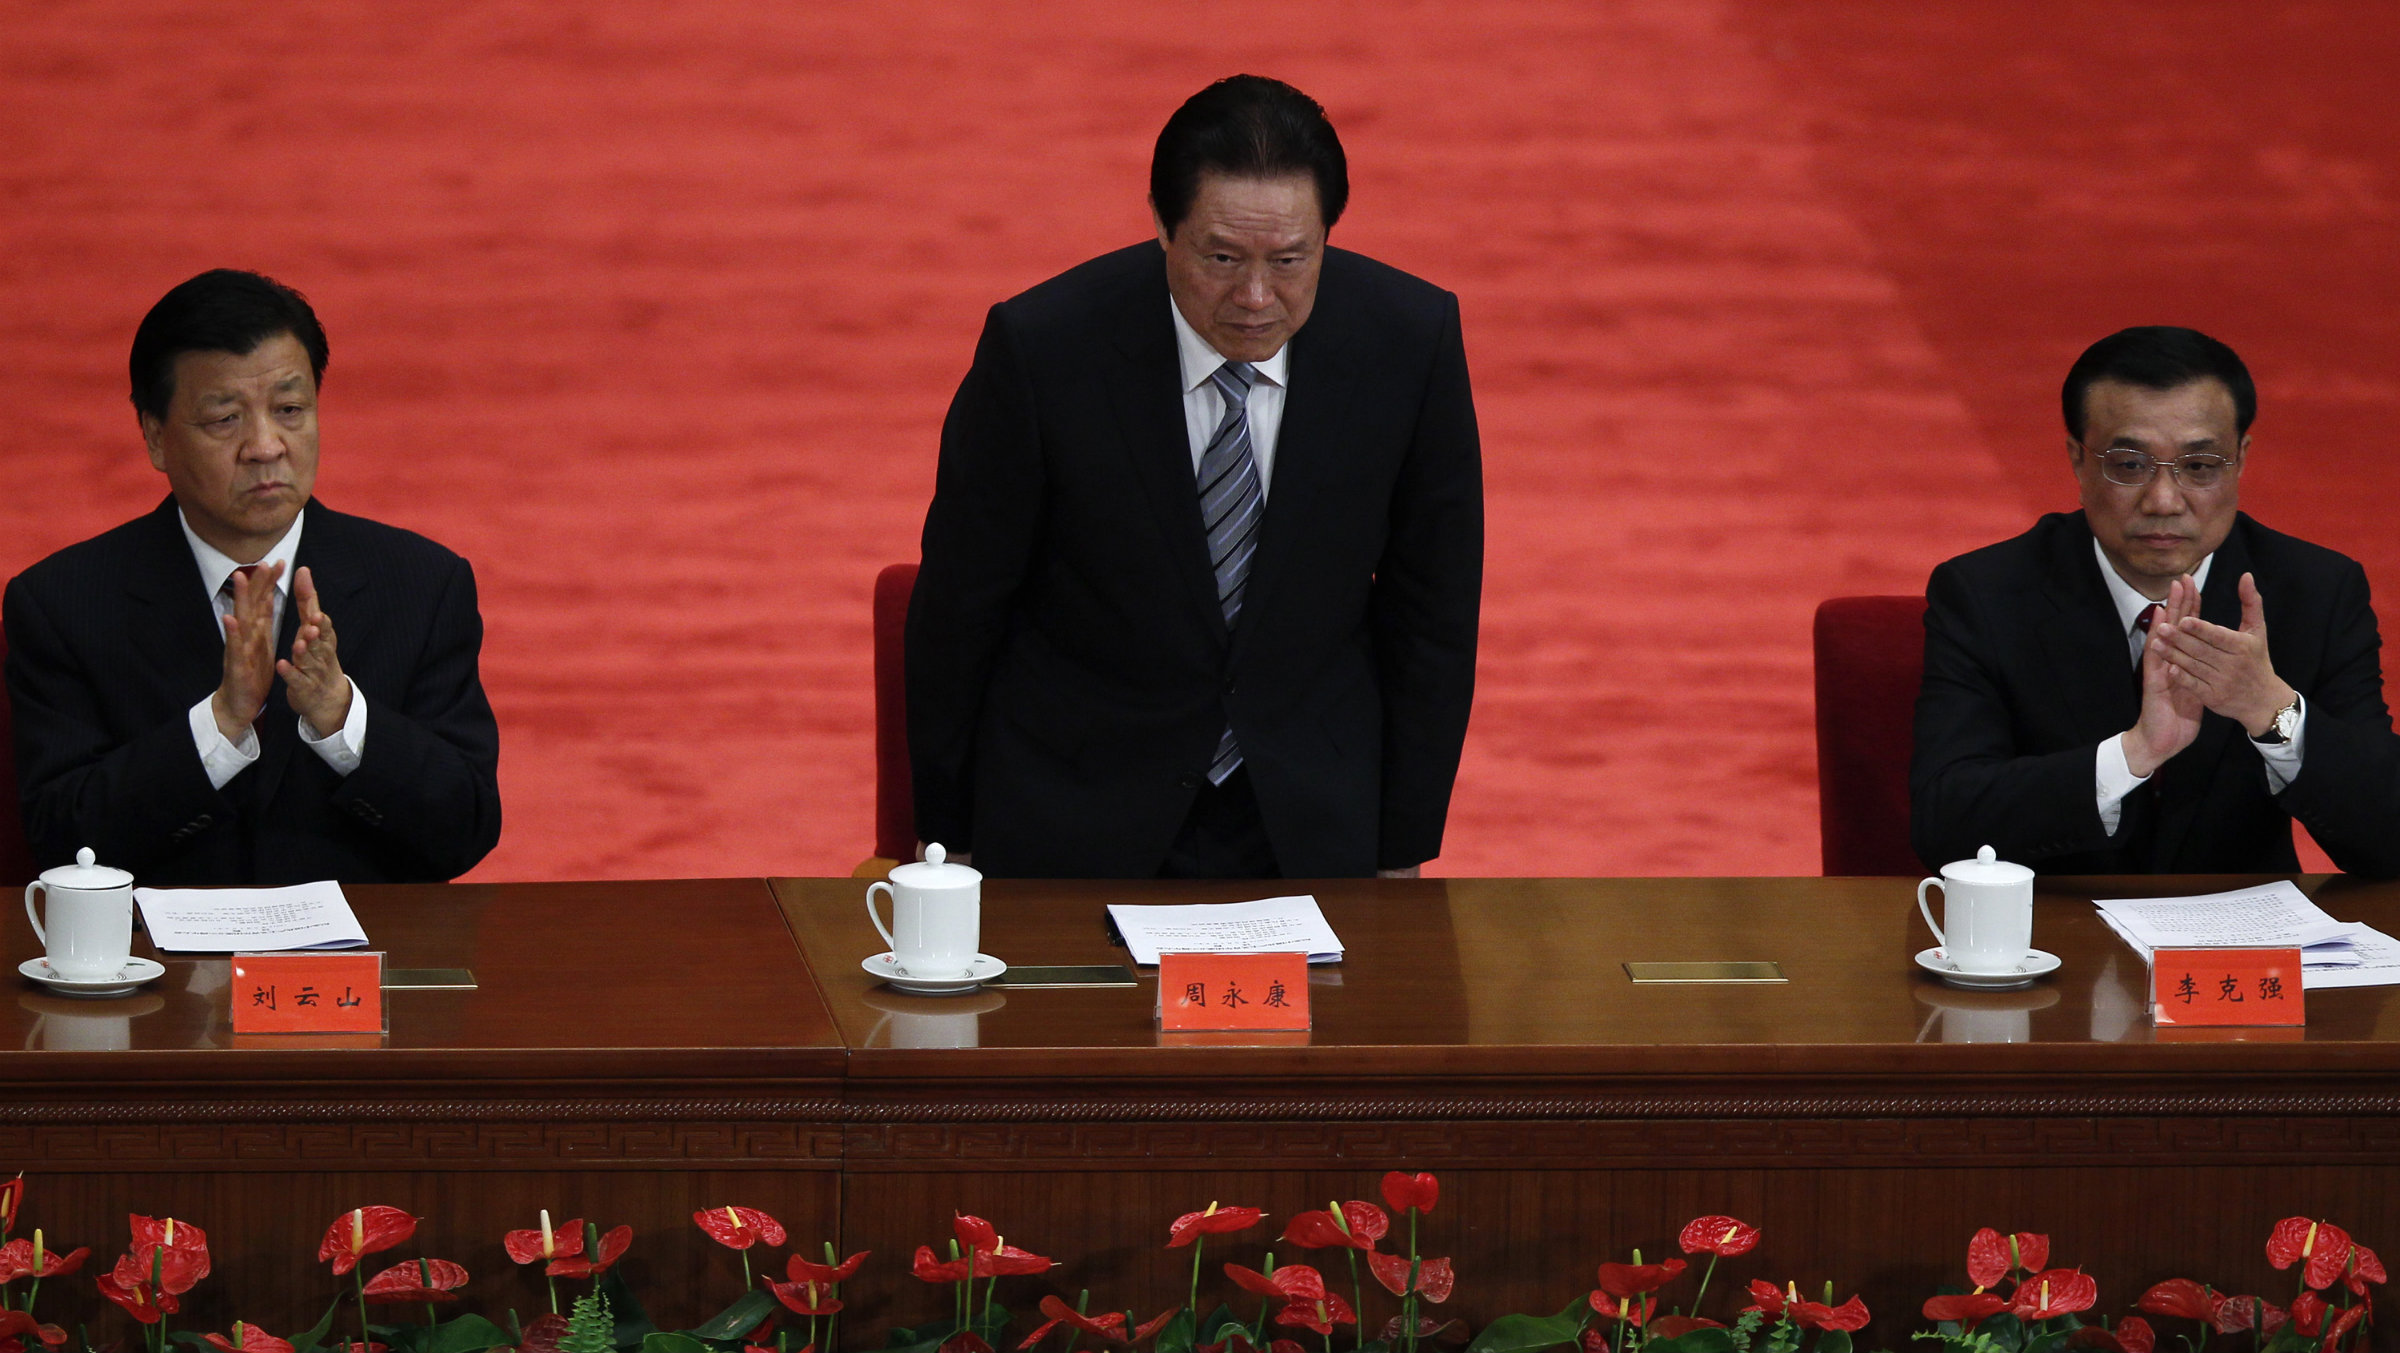 Zhou Yongkang China corruption crackdown